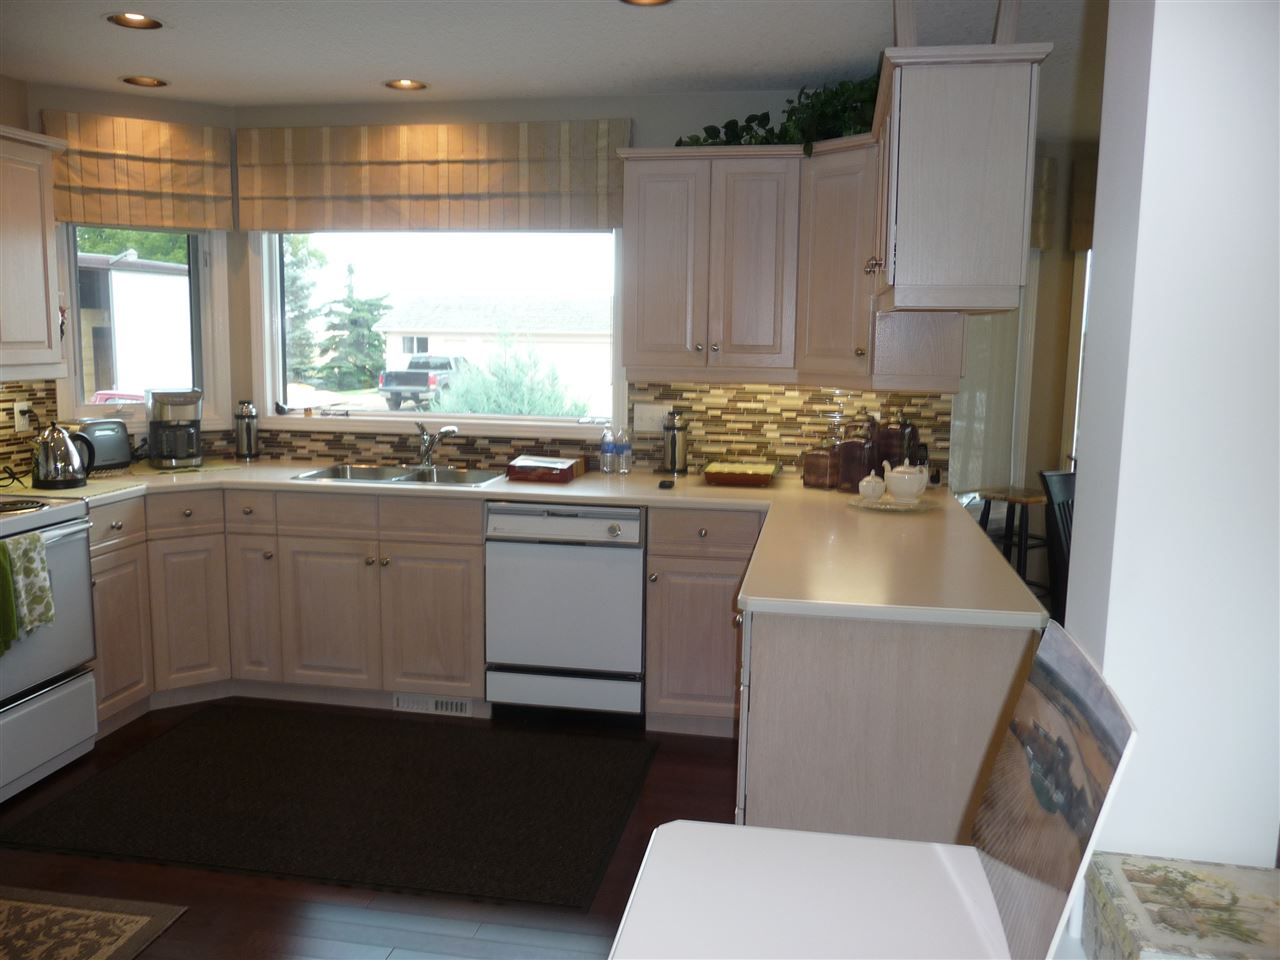 Photo 5: 54527 RGE RD 243: Rural Sturgeon County House for sale : MLS(r) # E4033494